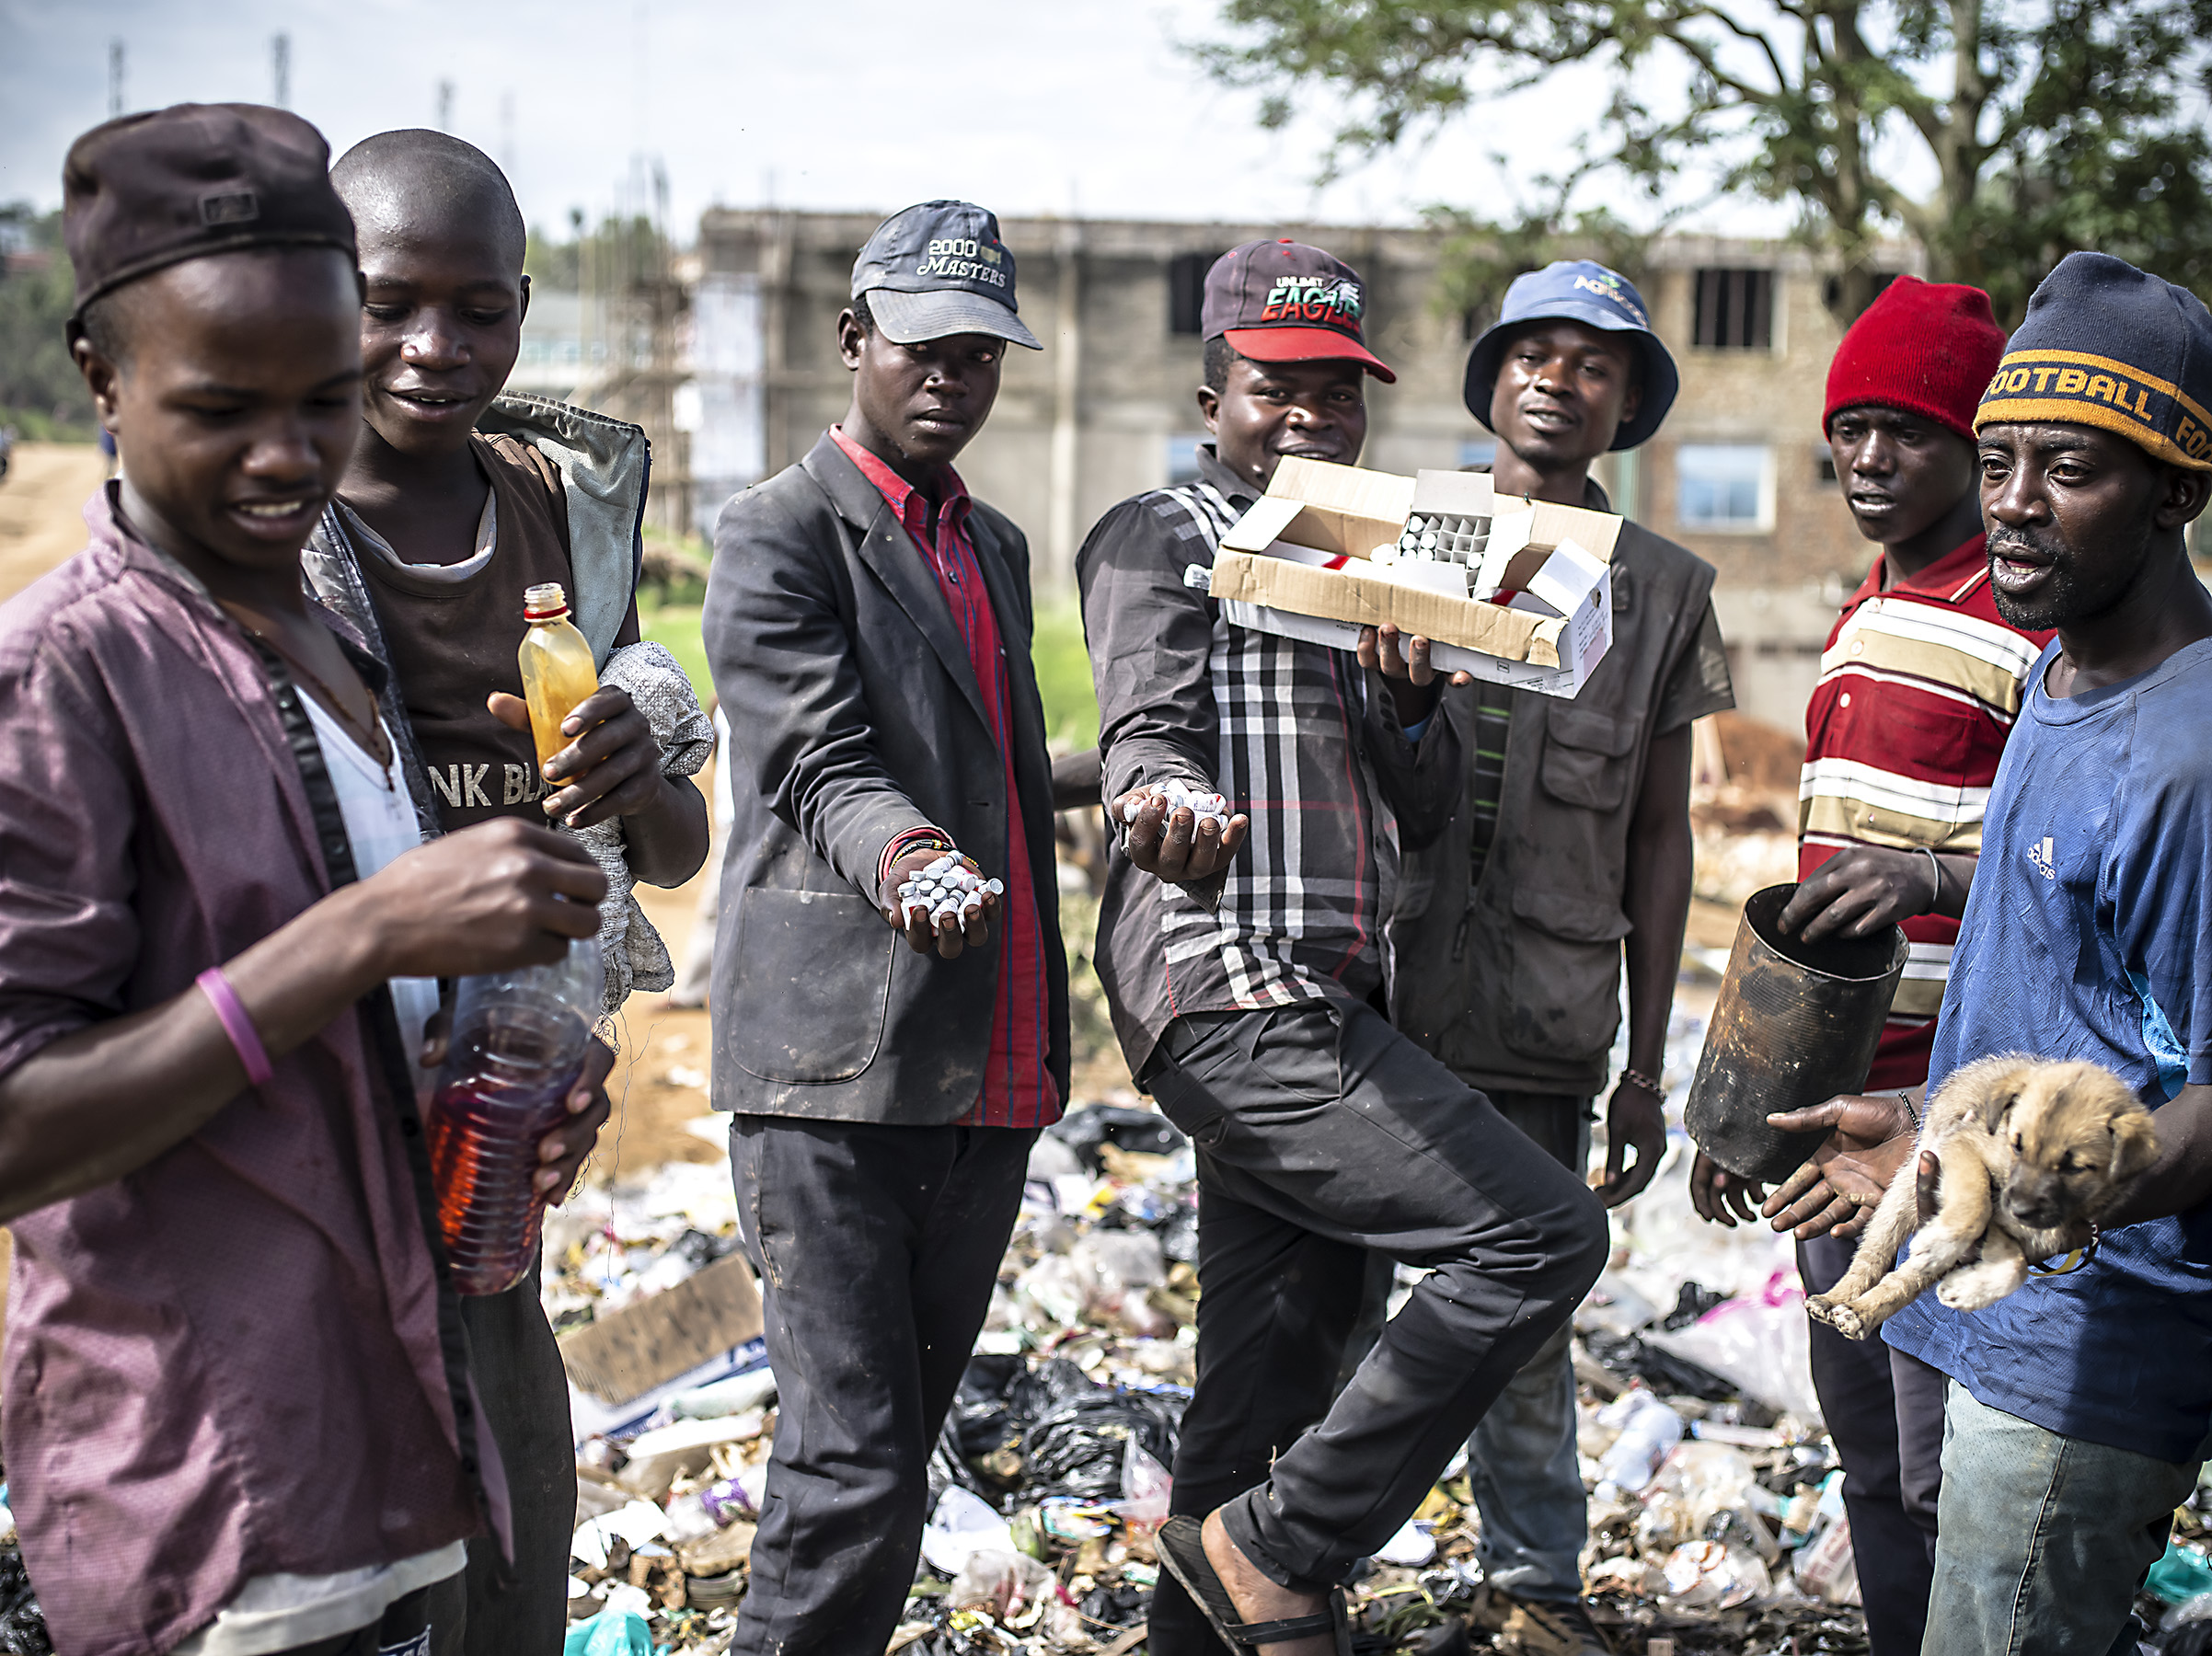 A group of men show me various things they have with them from the trash area including, glue for huffing, medicine waste they may reuse, a can they cook food from and a puppy. Mbarara.